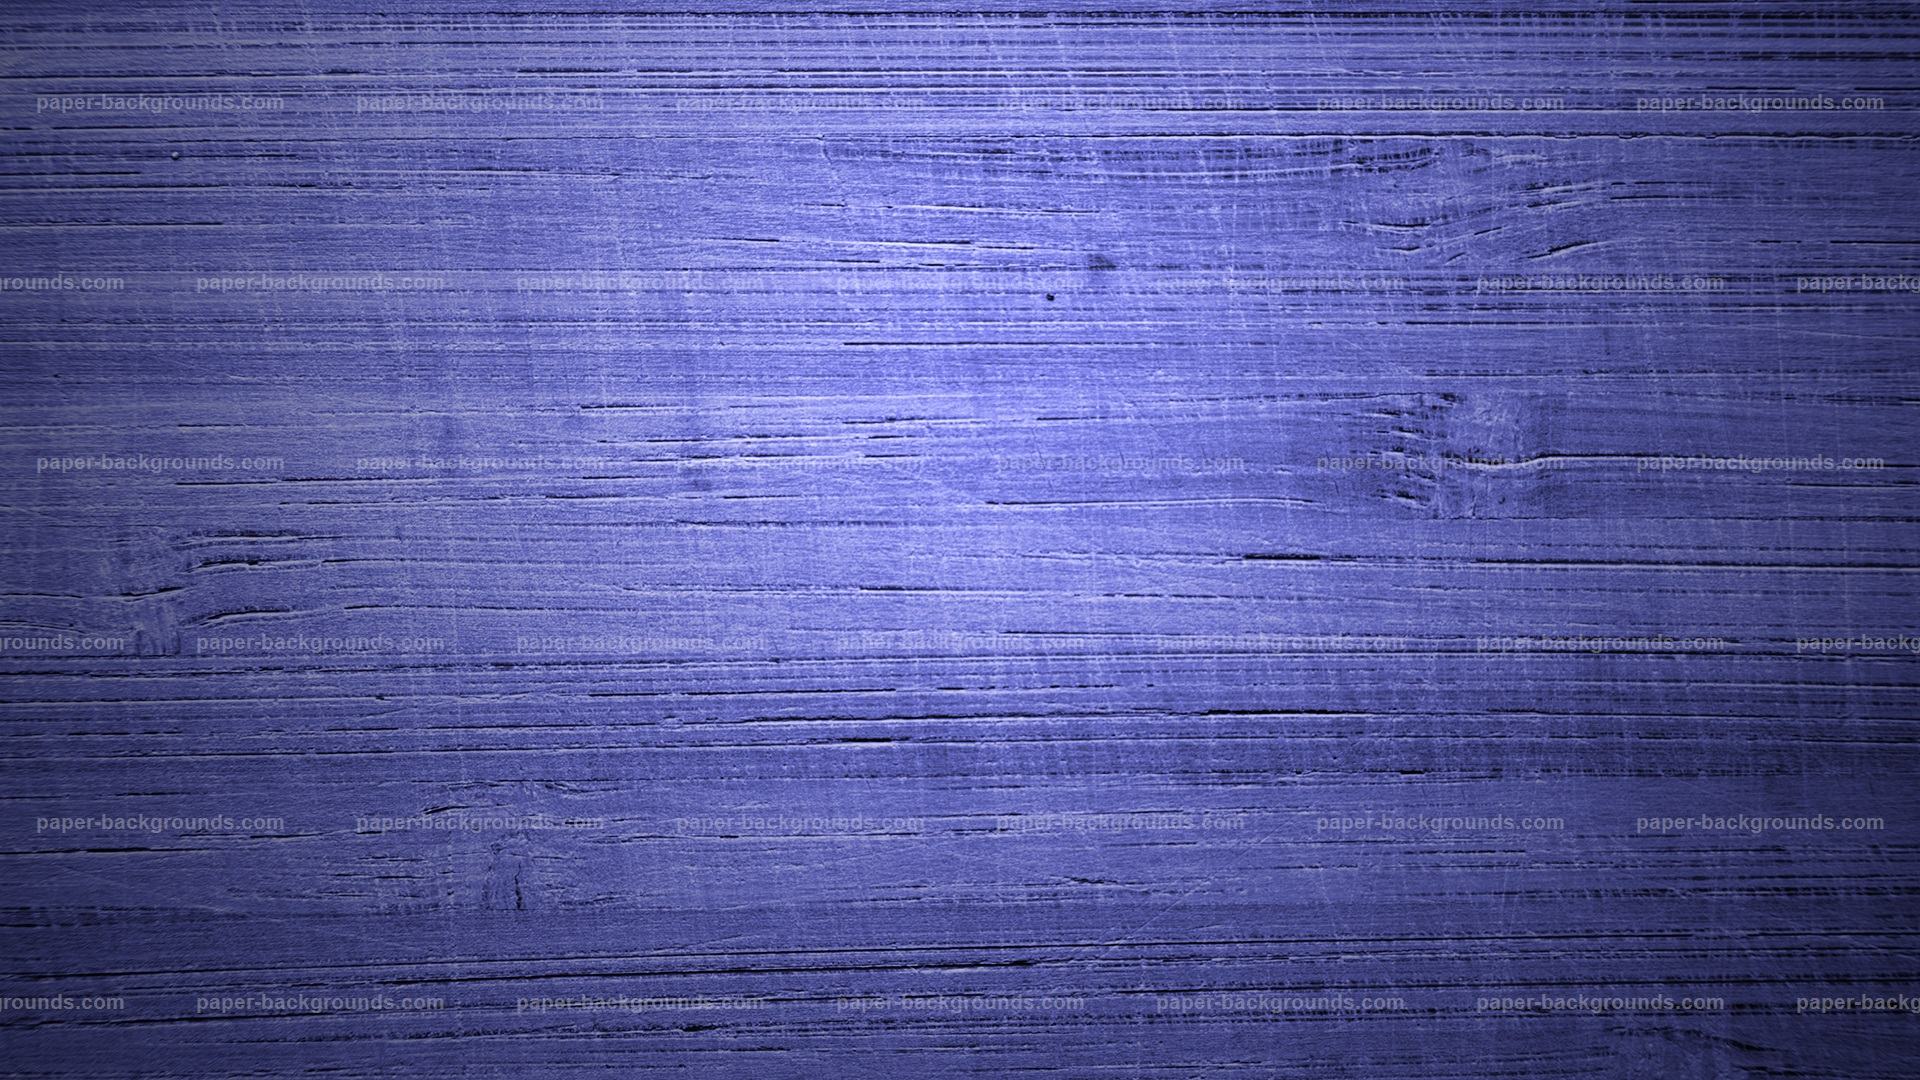 Paper Backgrounds | Blue Light Wood Texture Background HD